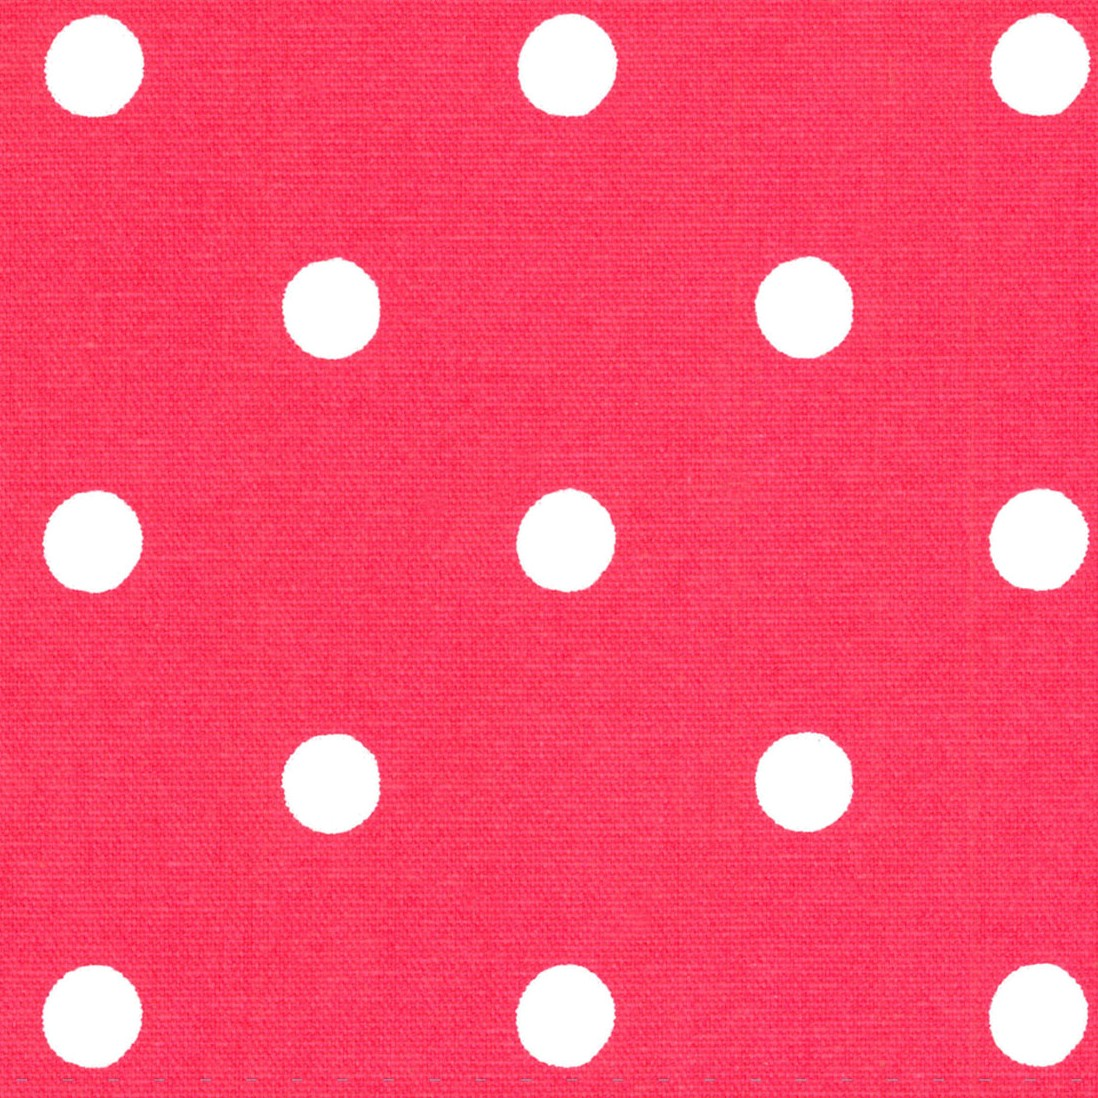 Spot Red Cotton Duck - Red - Red cotton fabric with white dots from Cath Kidston